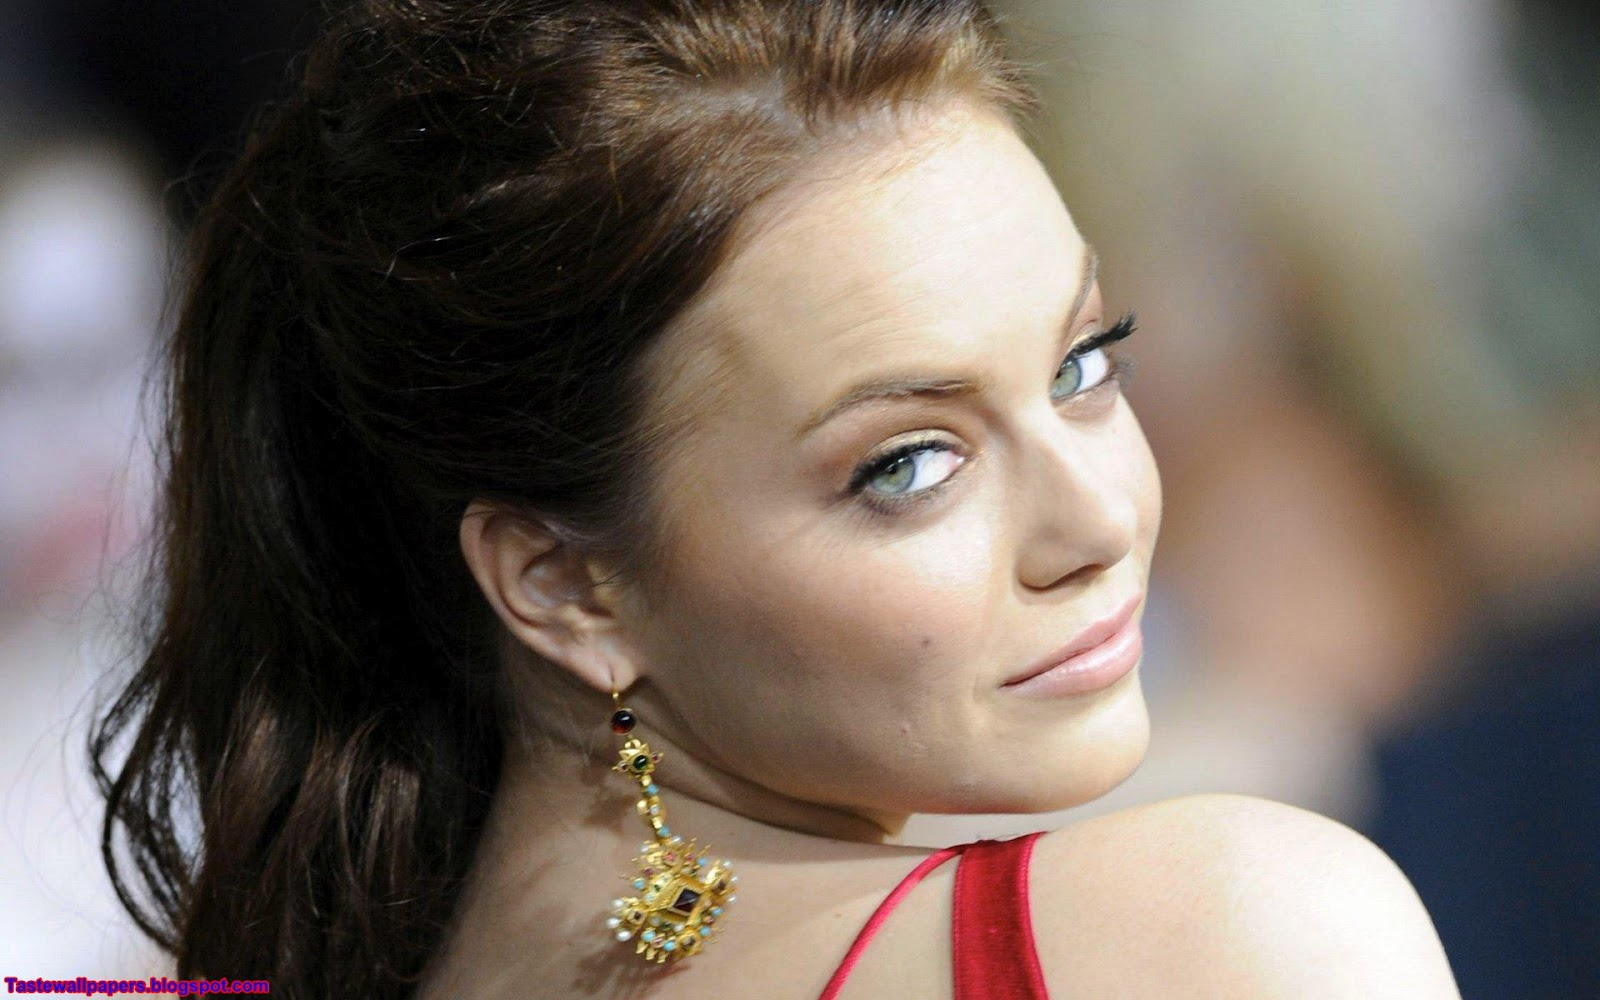 http://2.bp.blogspot.com/-wAyPqUFItoc/T5J1YASWUnI/AAAAAAAAA0s/ZXZpDZoYZ-M/s1600/Emma-Stone-backless_top_HQ-Wallpapers.jpg